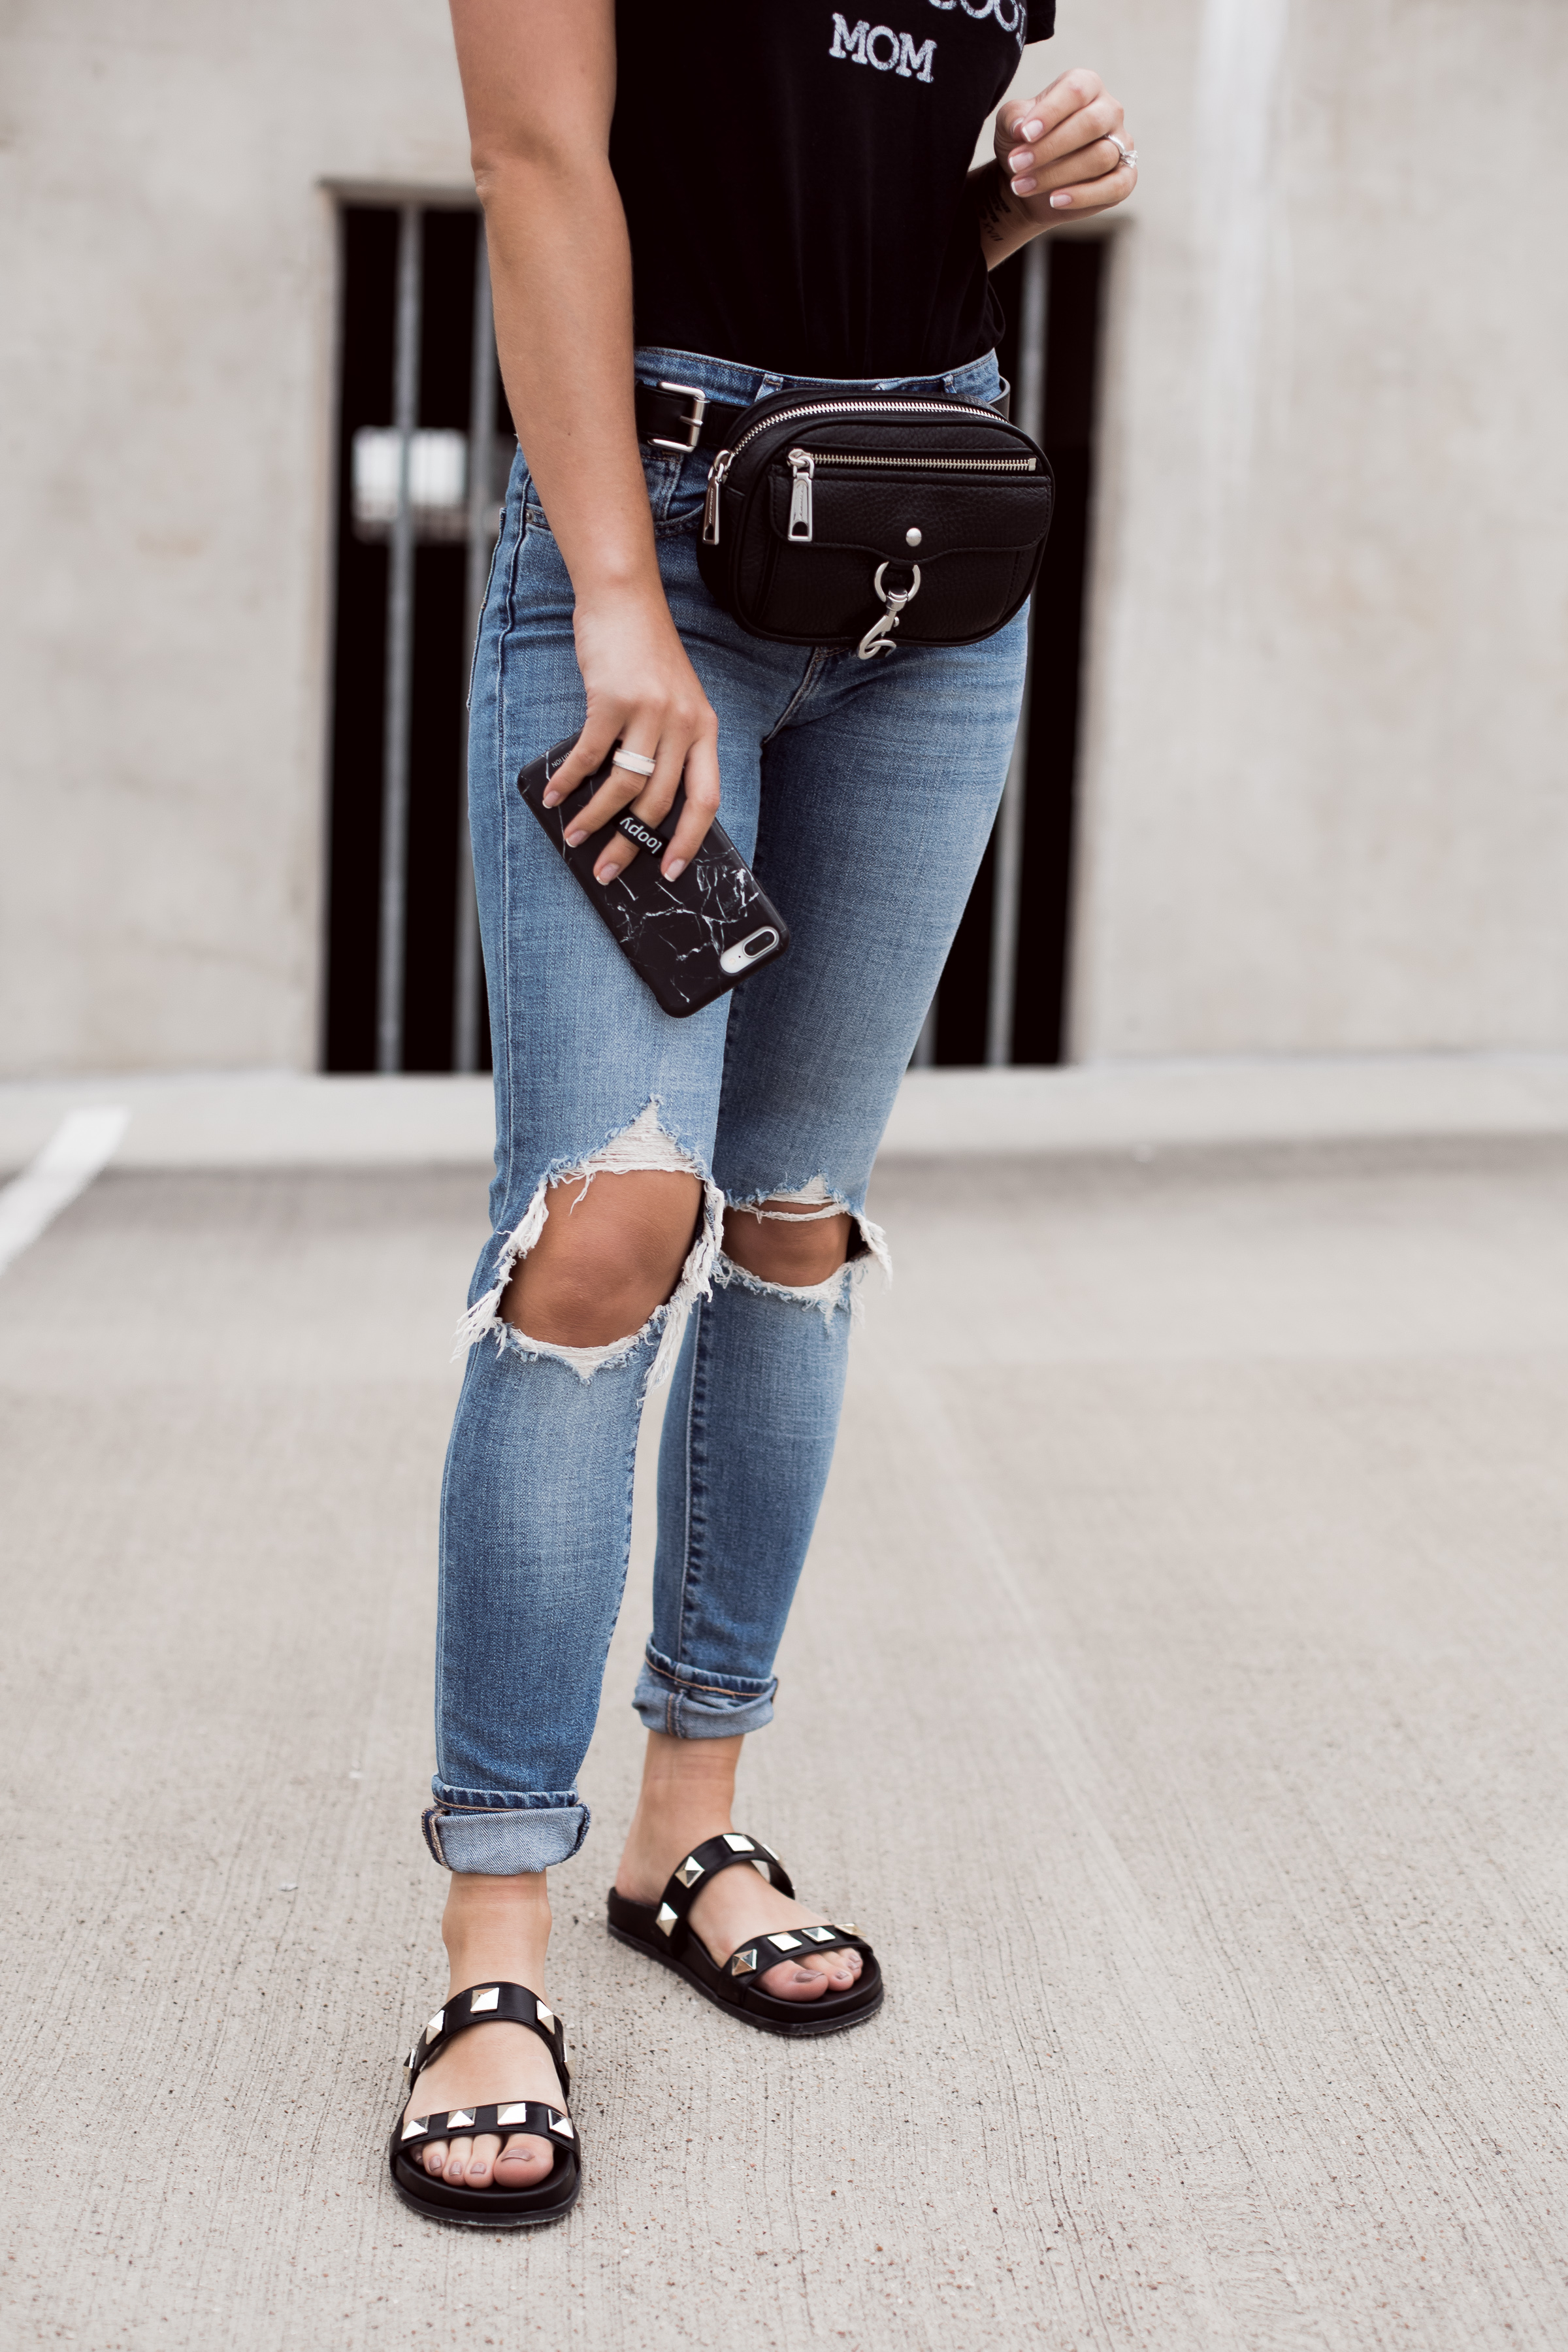 Houston fashion blogger Uptown with Elly Brown shares 2 of her favorite Spring Shoe Trends and how to wear them day to day. Click here for more!